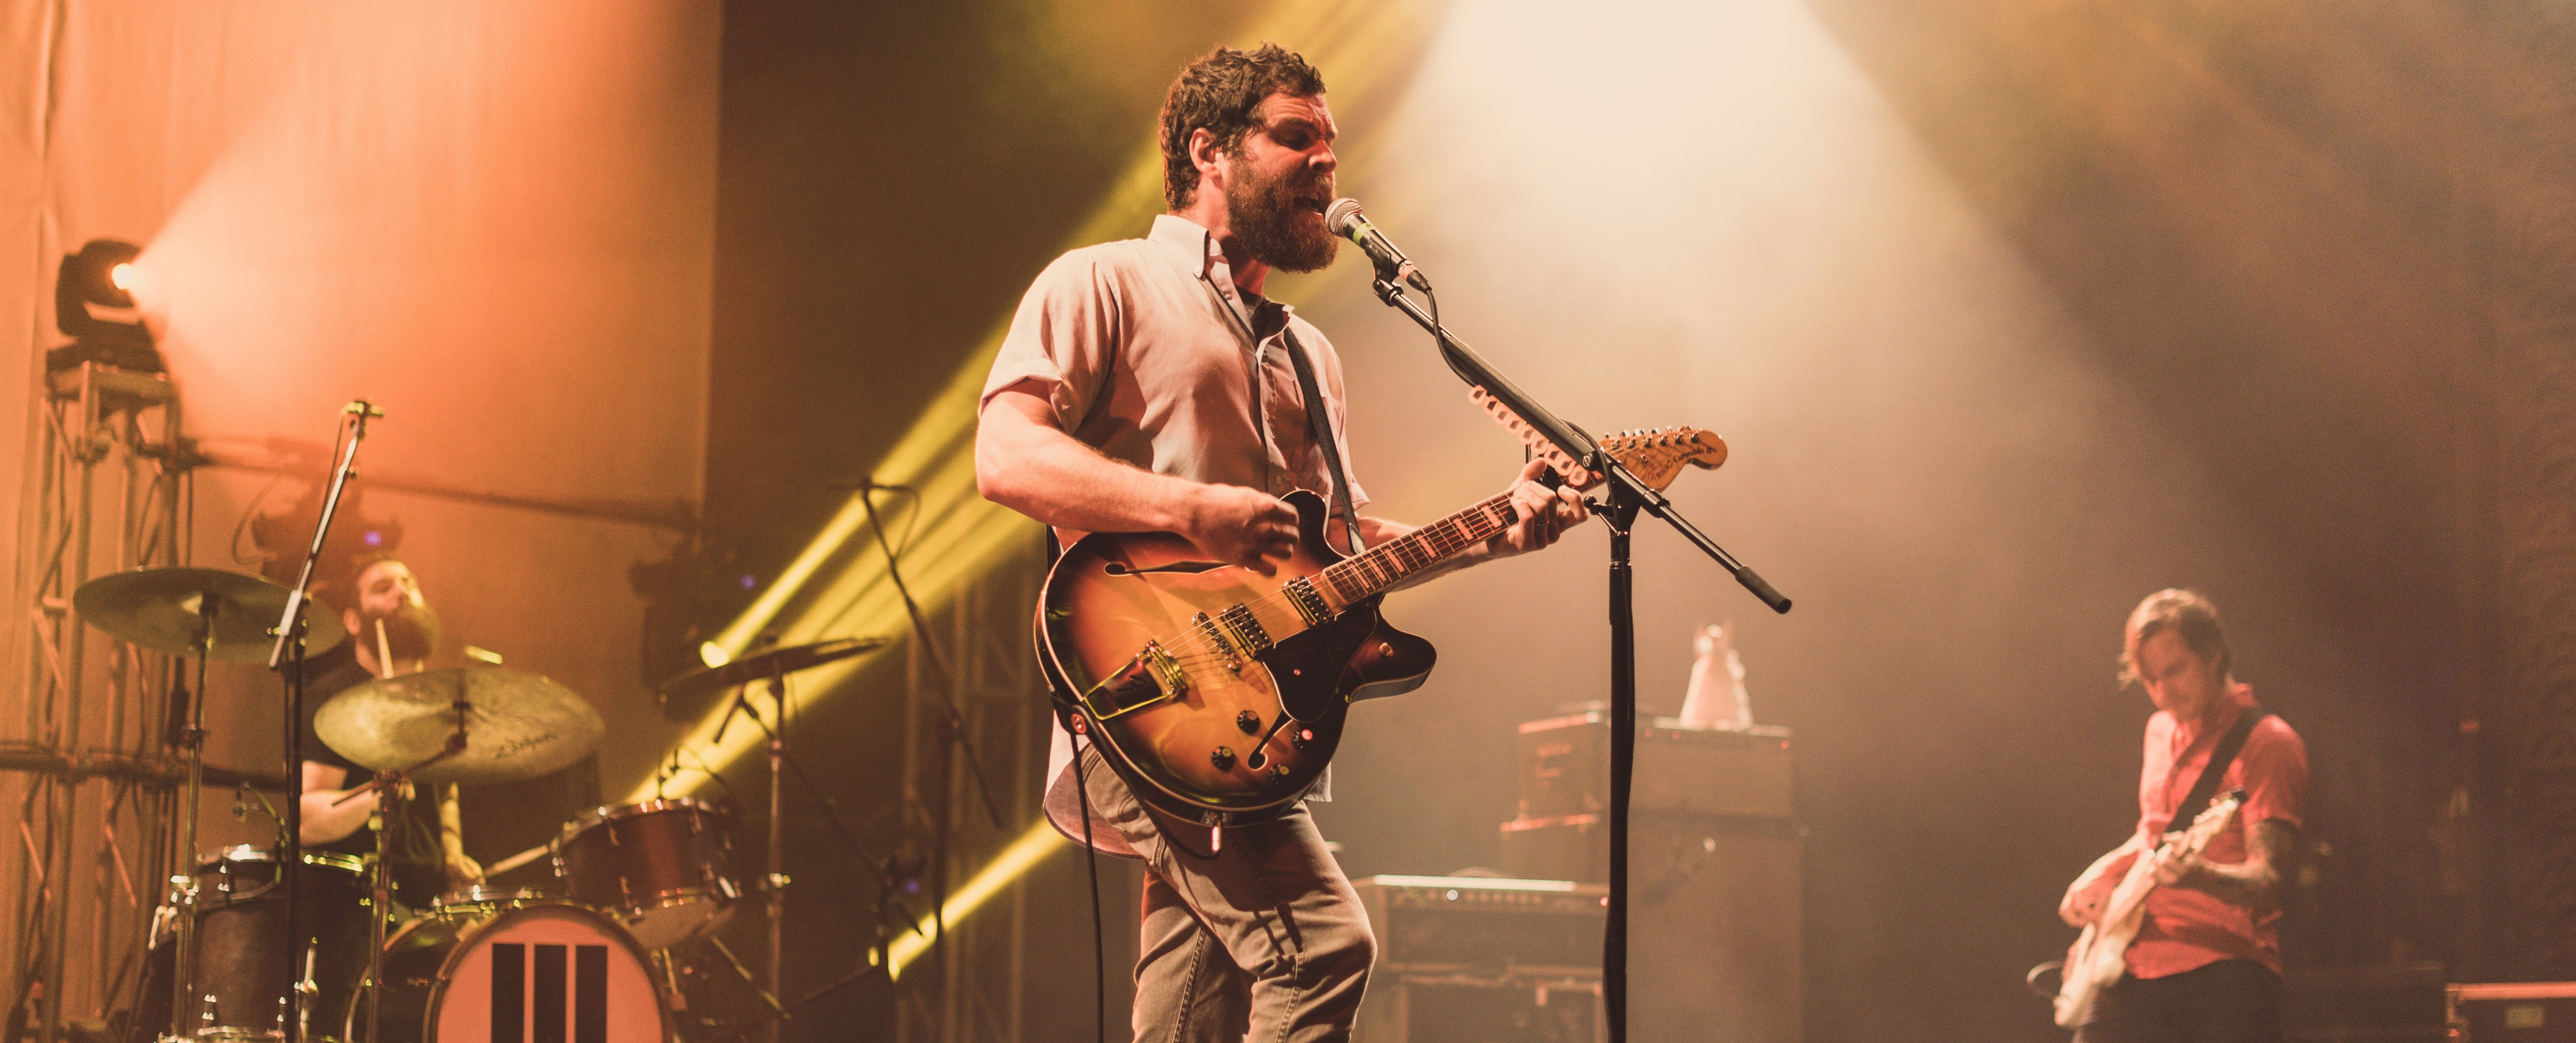 Photos: Manchester Orchestra, Tigers Jaw, and Foxing at North Park Observatory